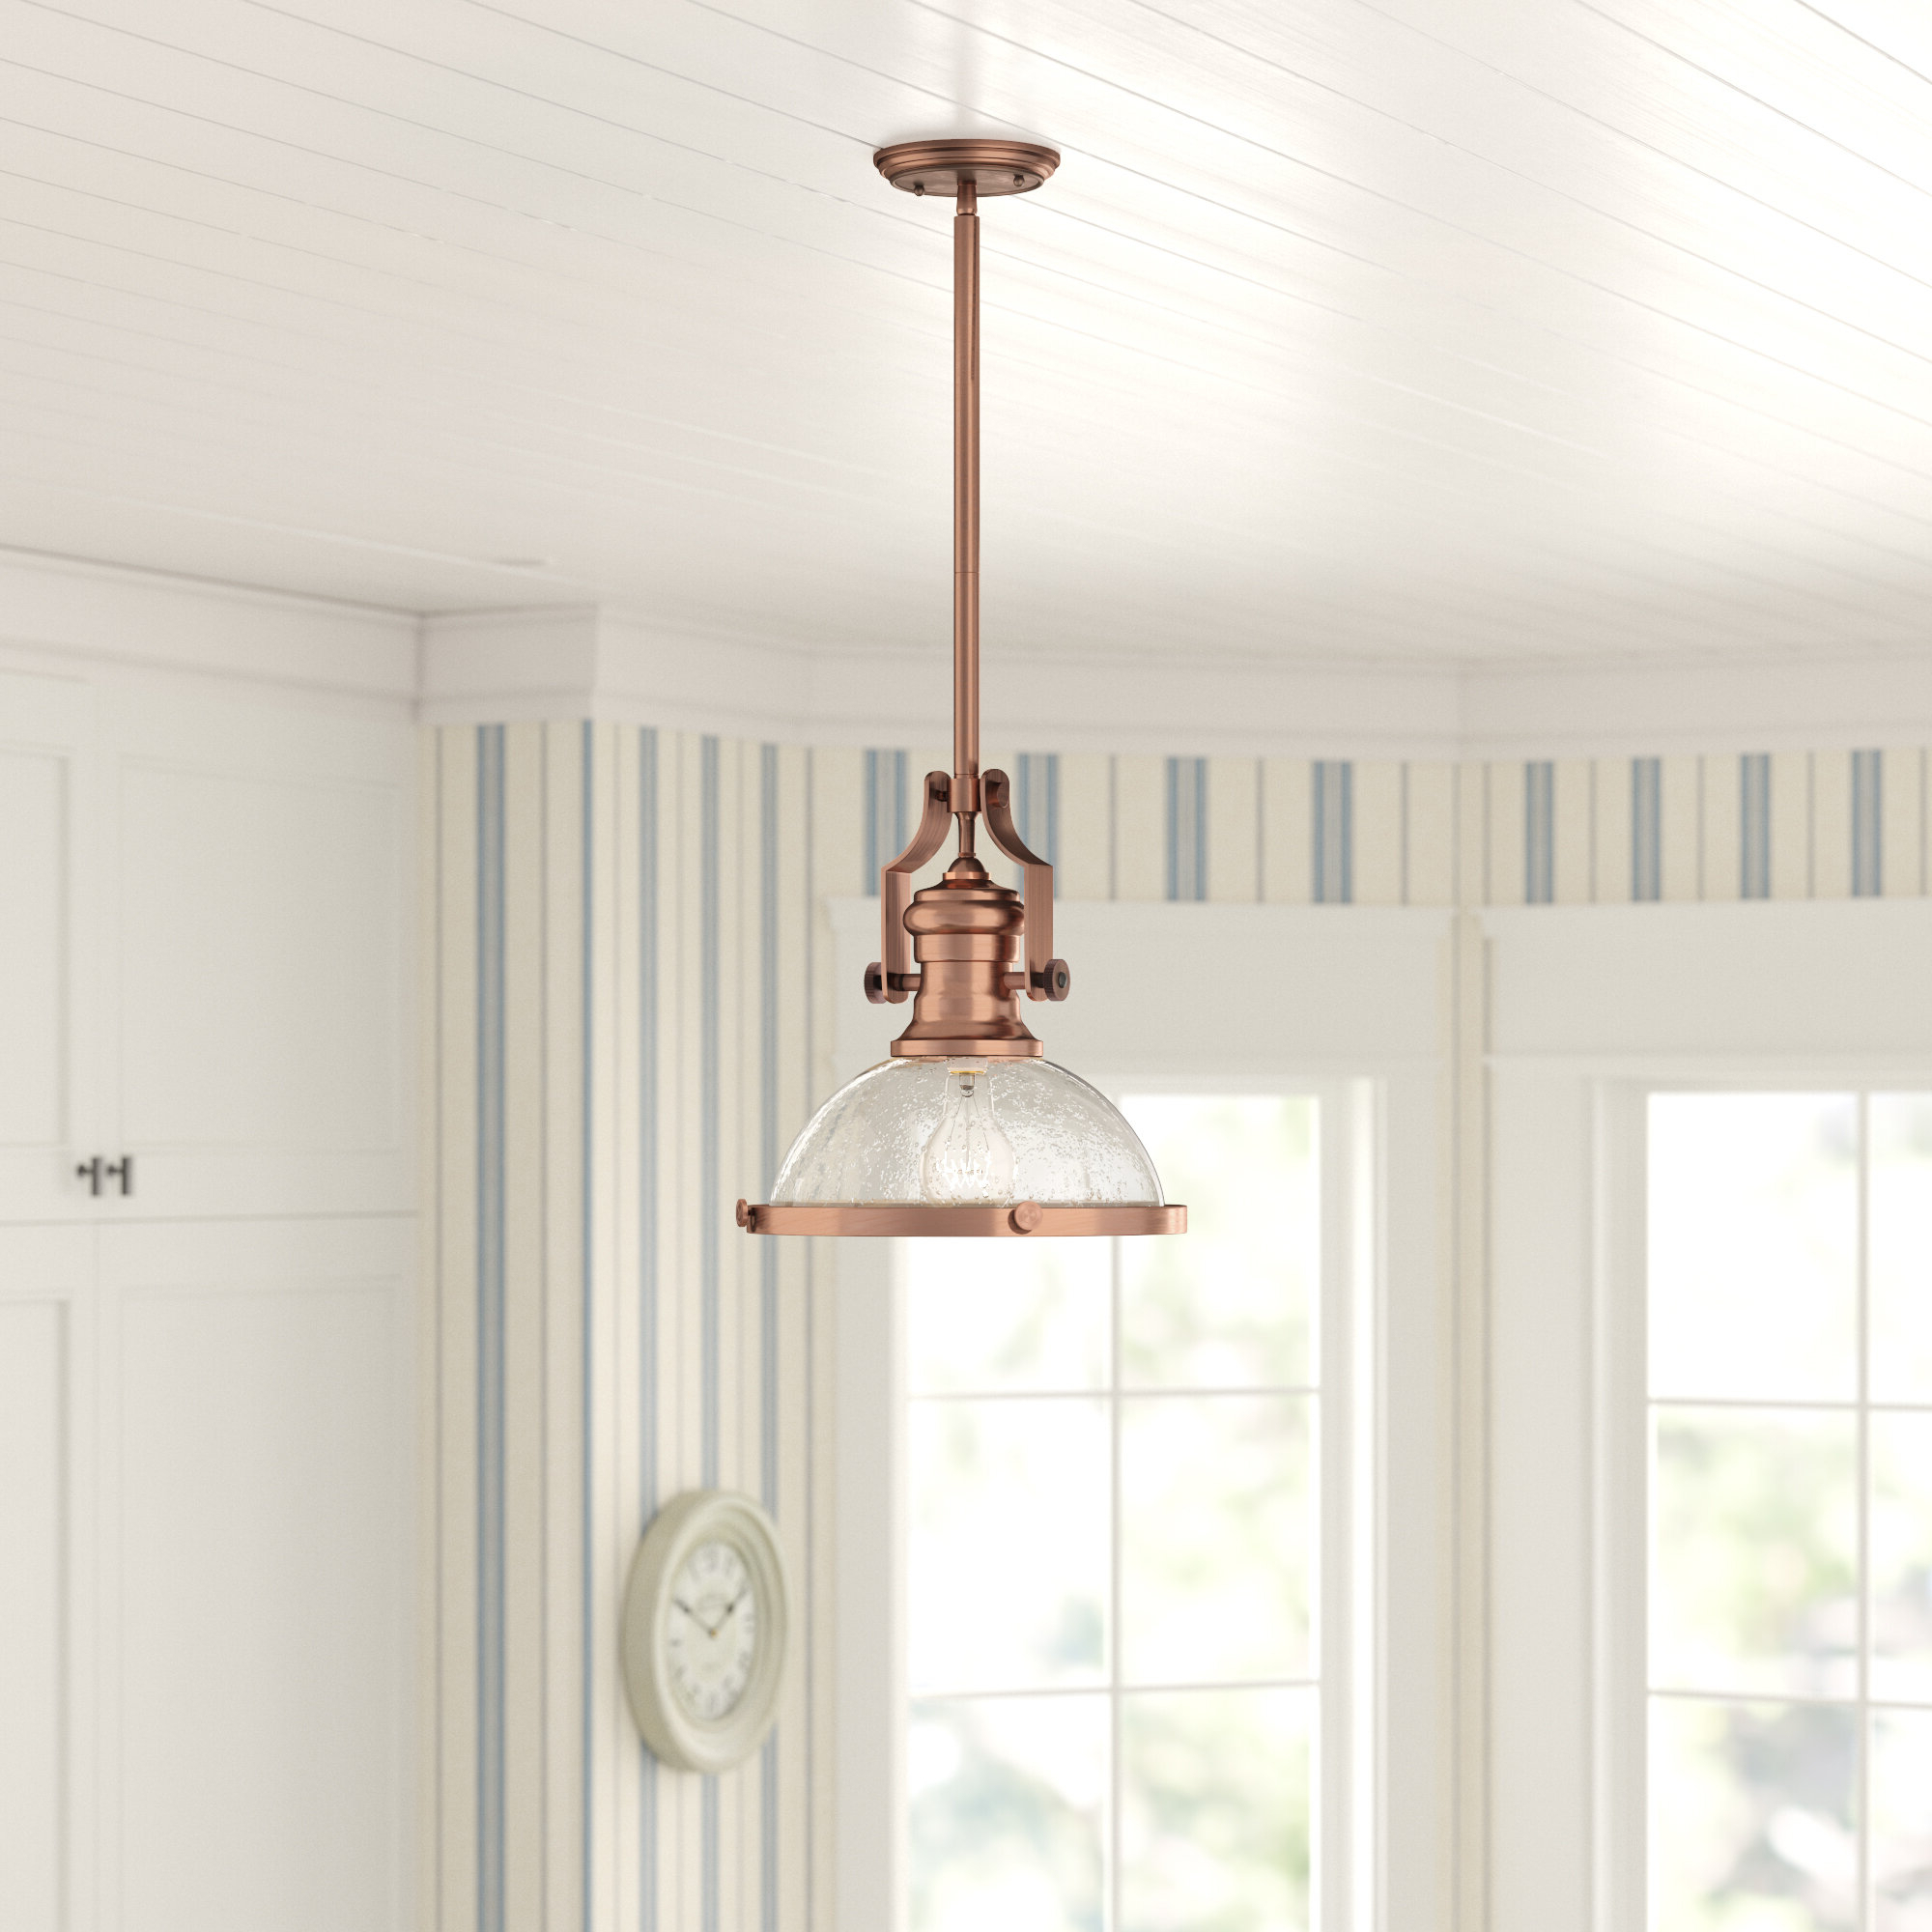 Well Liked Erico 1 Light Single Bell Pendants With Regard To Priston 1 Light Single Dome Pendant (View 12 of 25)